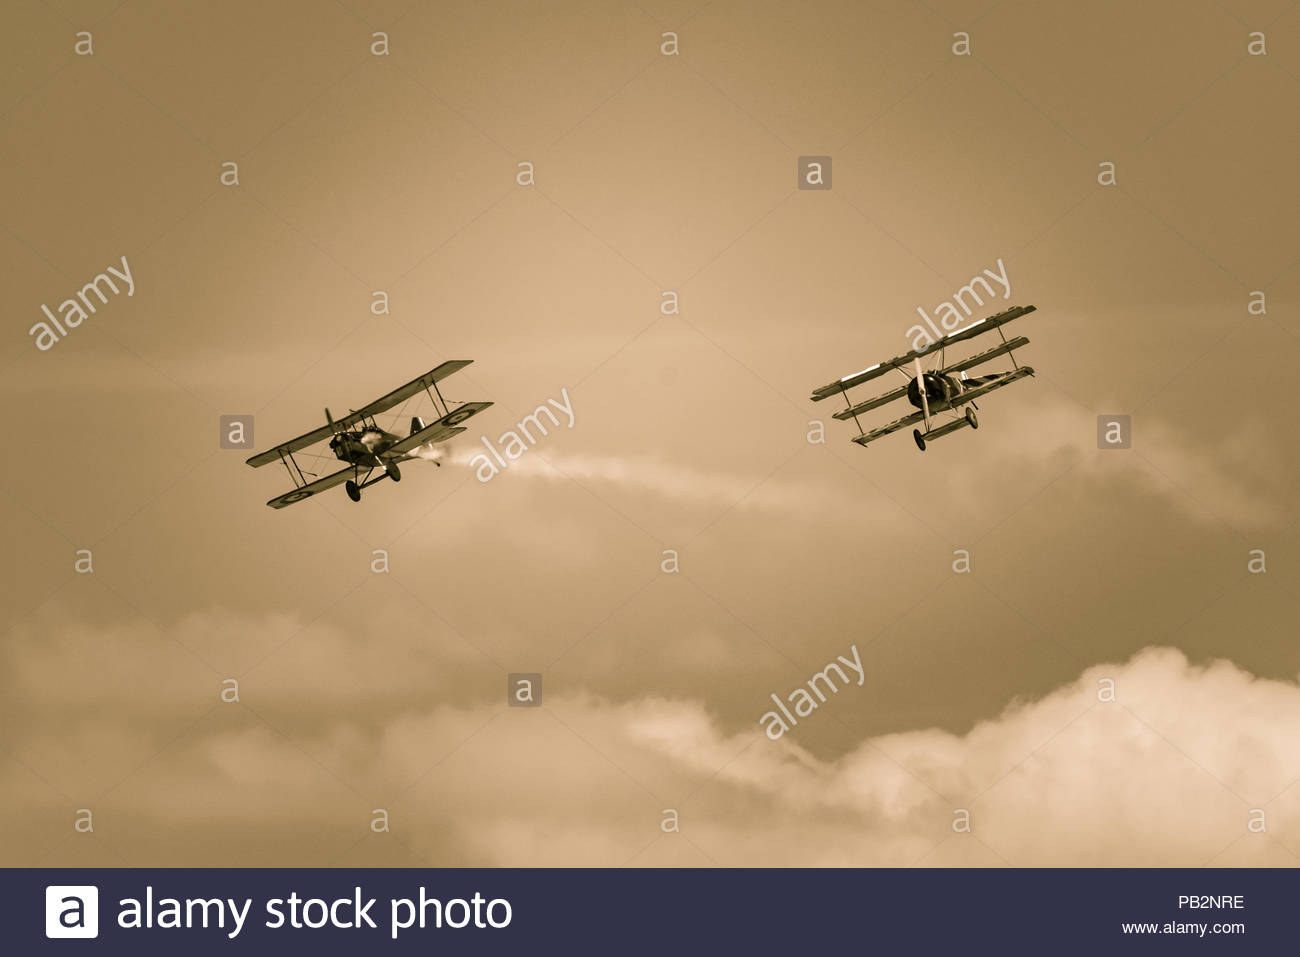 An image taken at RIAT 2018 of 2 WW1 World War One planes having a classic aerial combat dog fight - Stock Image